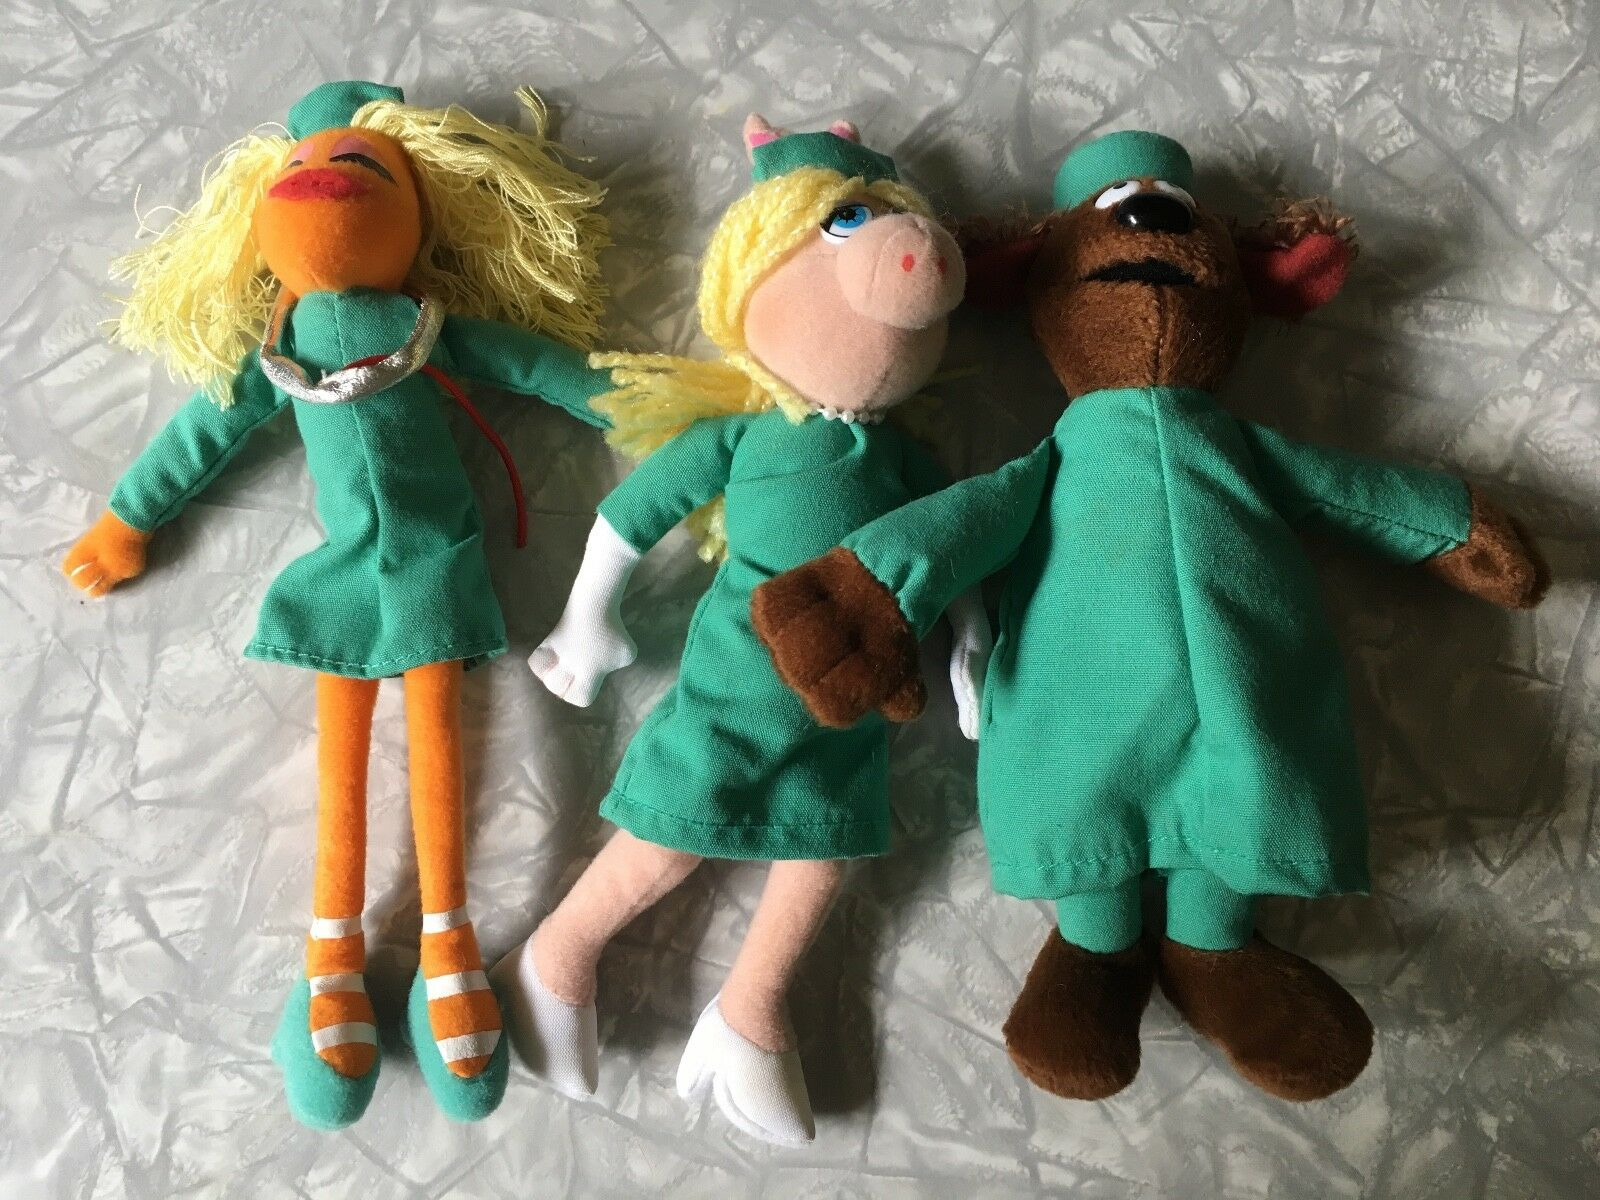 2003 Sababa The Muppets Veterinarians Hospital plush set Rowlf Janice Miss Piggy